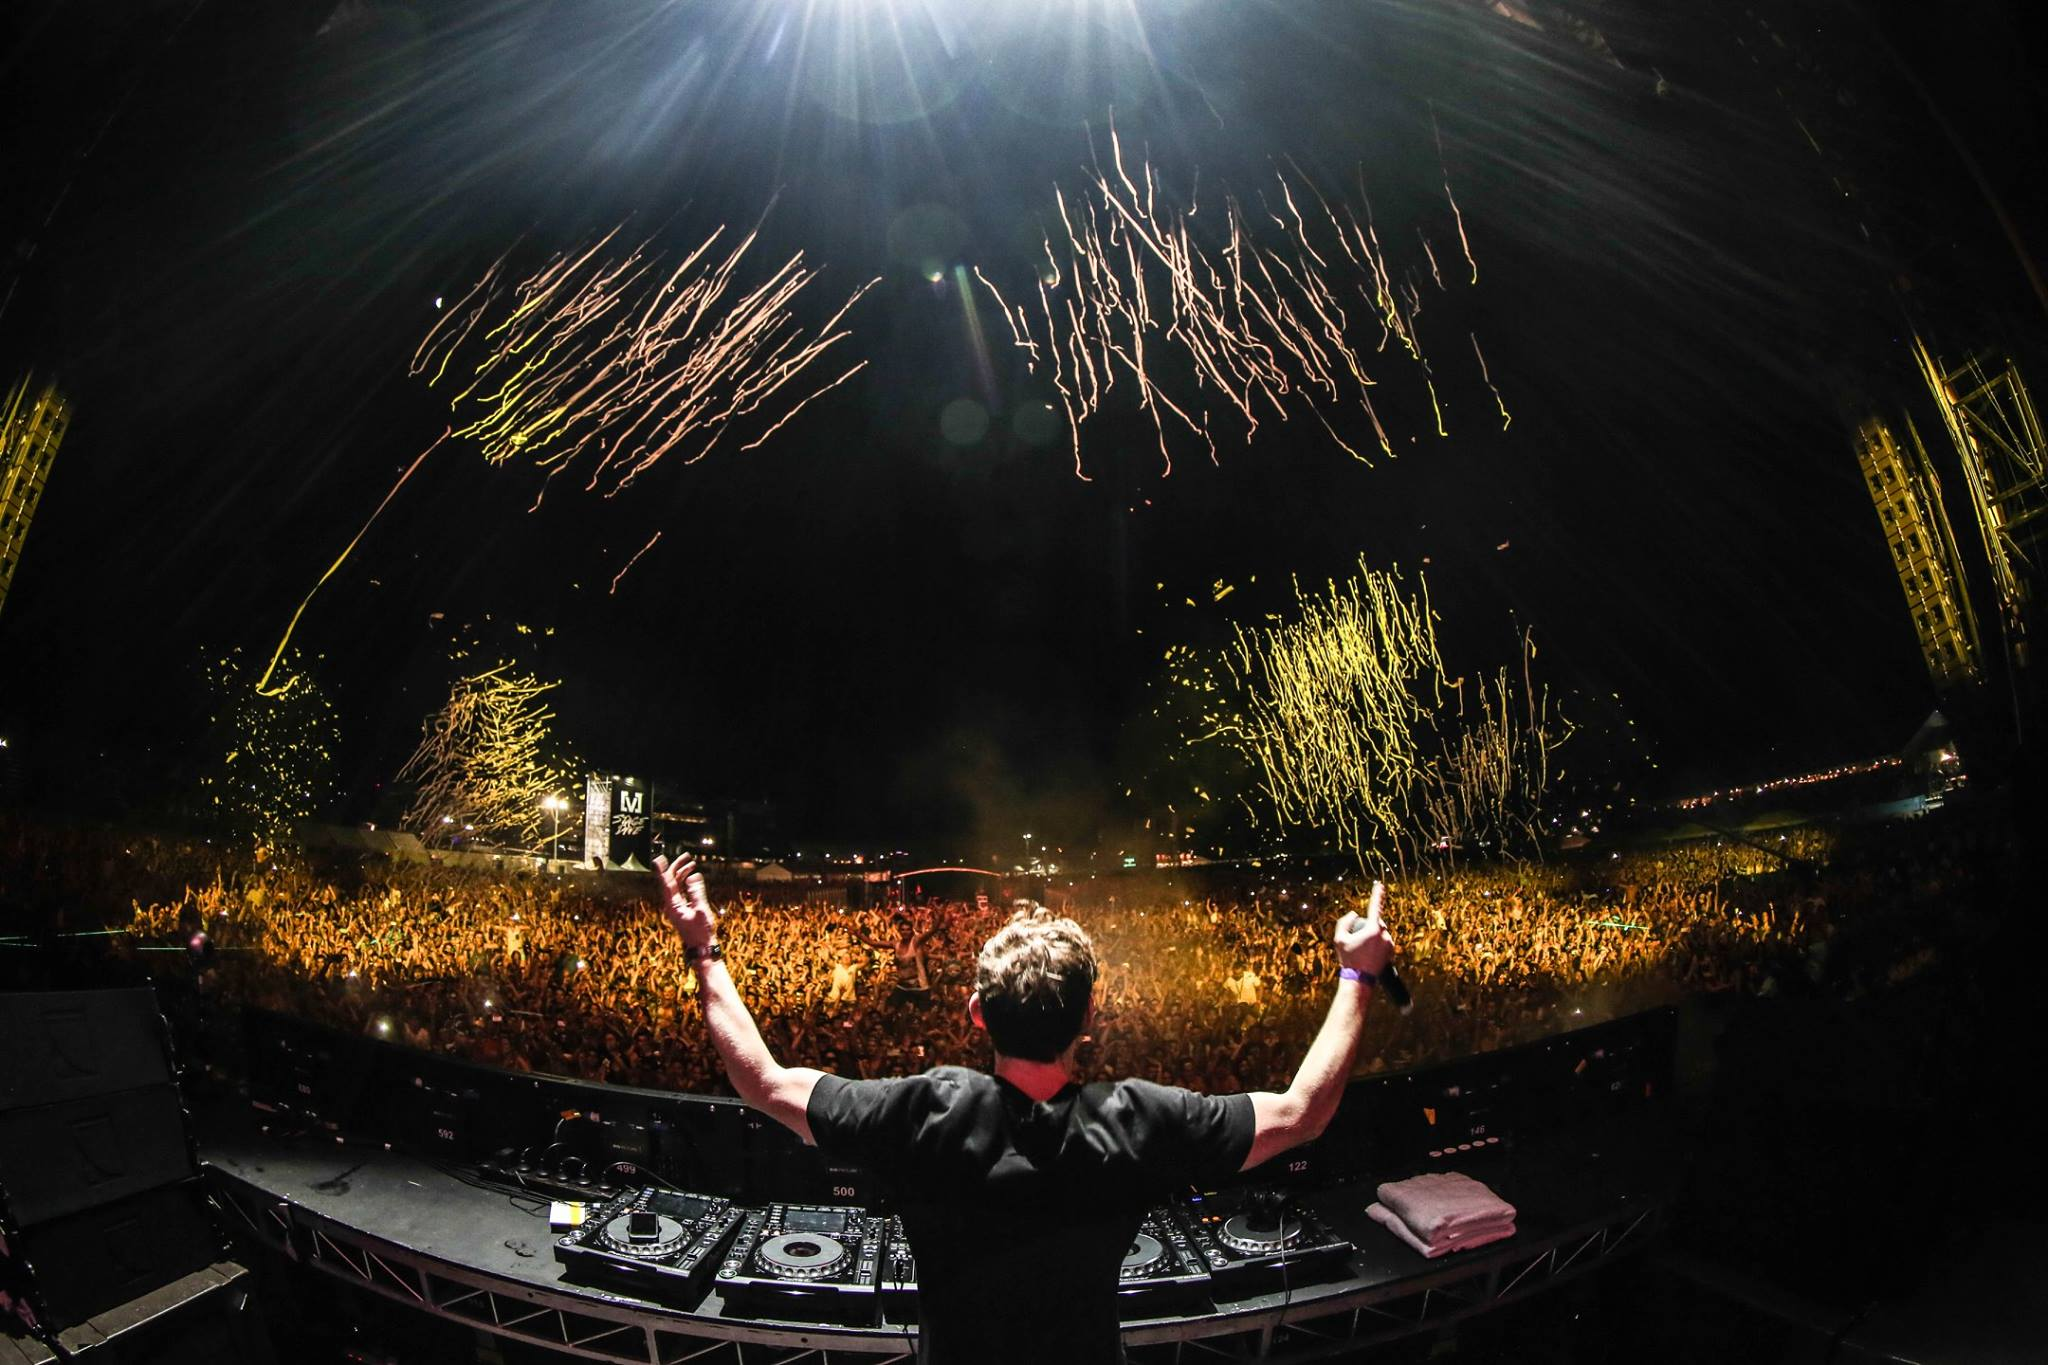 hardwell wallpaper hd - photo #5